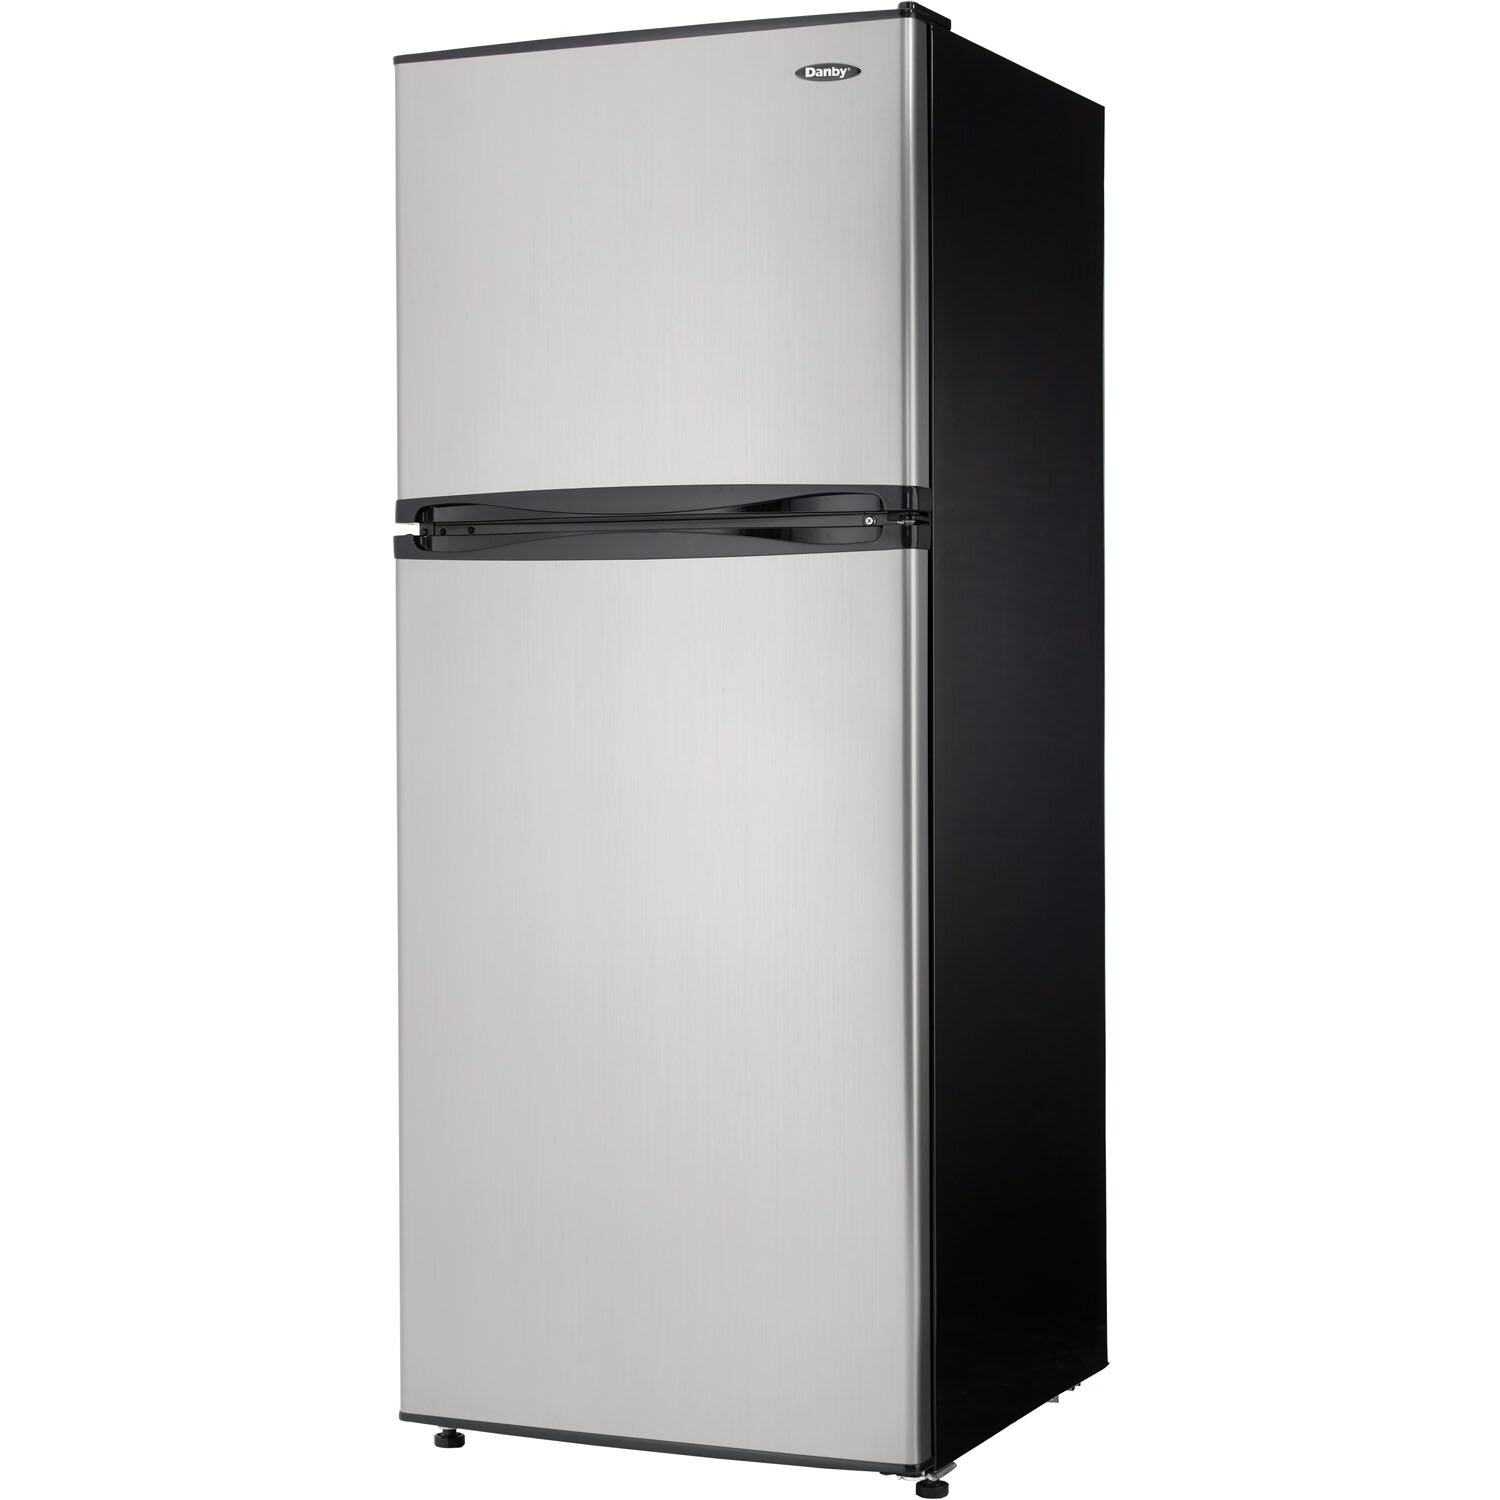 Apartment Fridge: Danby 10 Cu. Ft. Top Freezer Refrigerator & Reviews